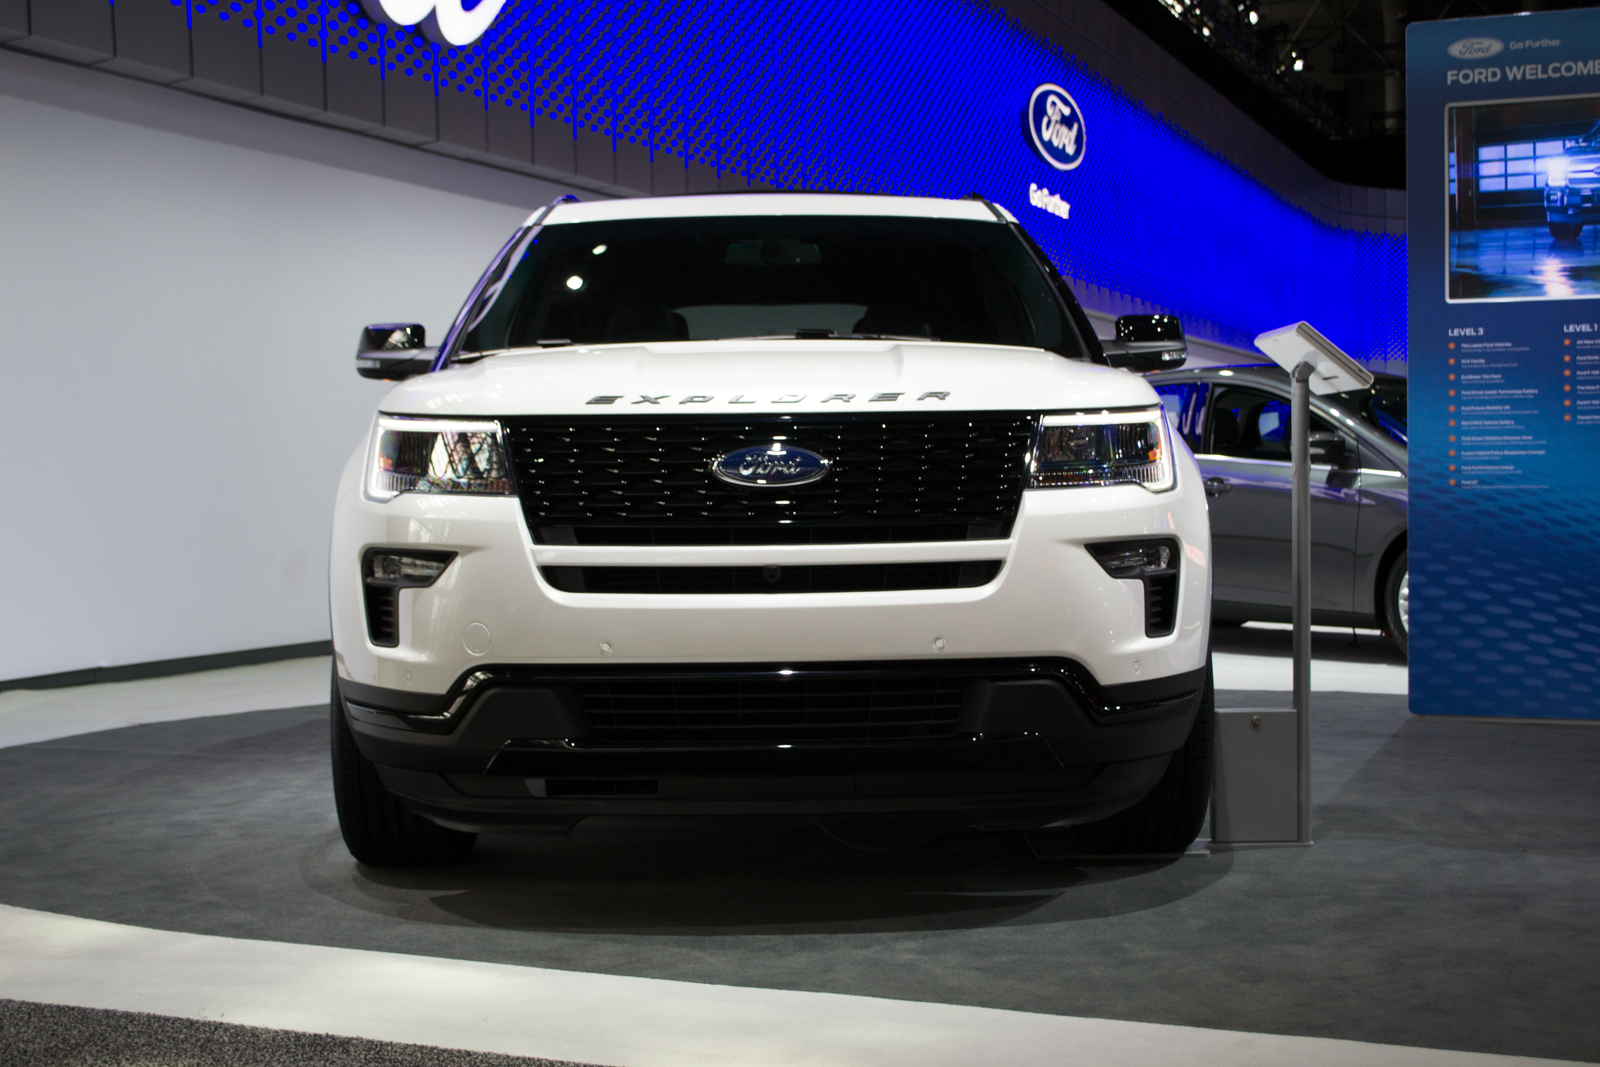 Spot Loan Reviews >> 2018 Ford Explorer: Can You Spot the Updates? » AutoGuide ...